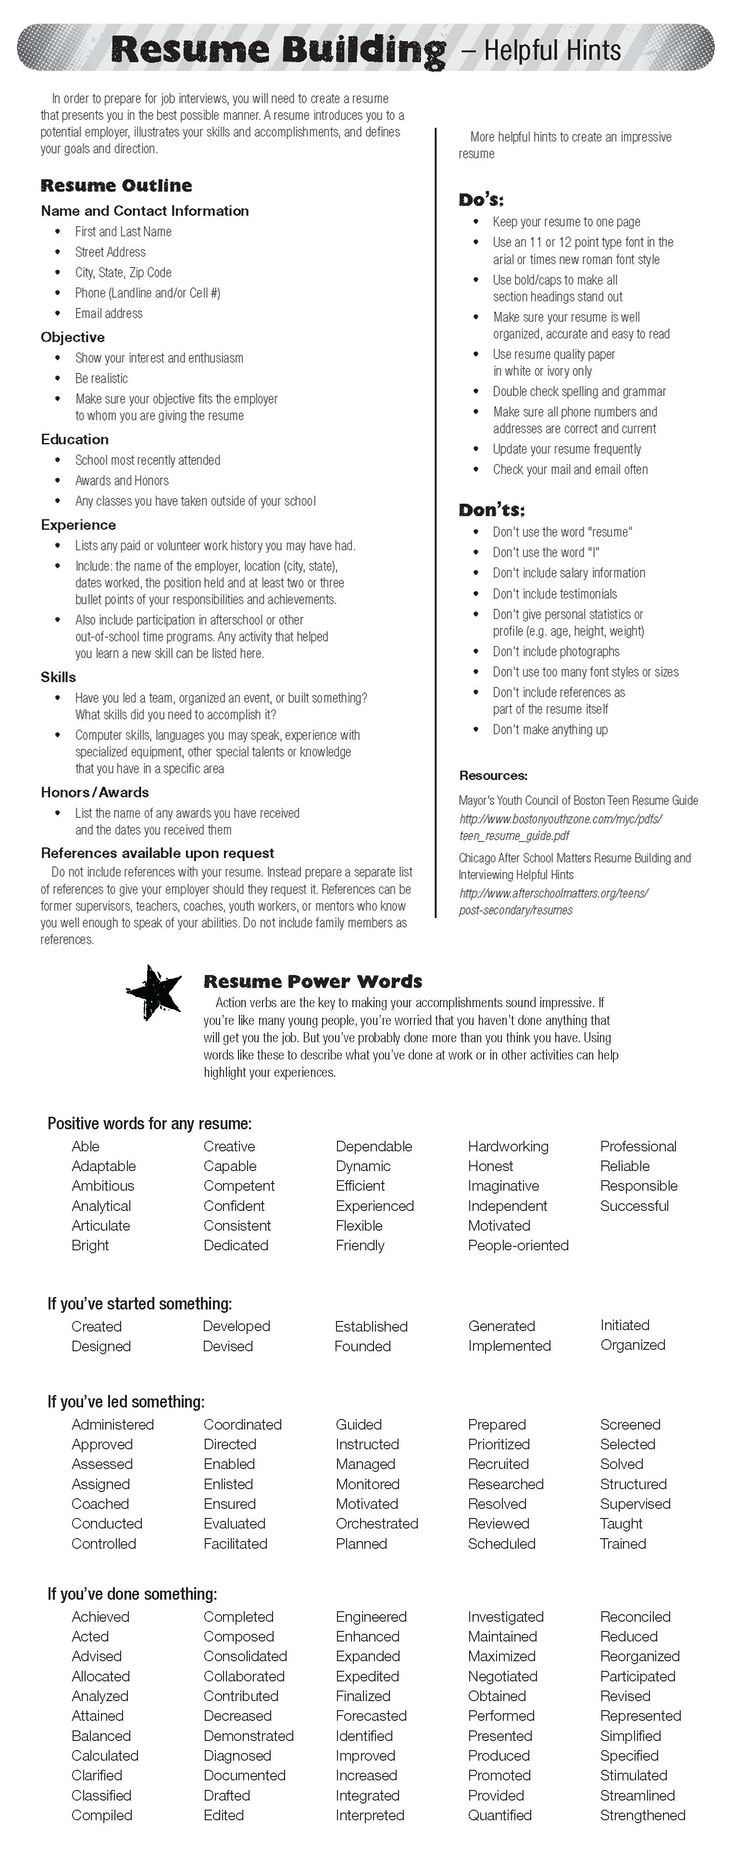 Opposenewapstandardsus  Wonderful  Ideas About Resume On Pinterest  Cv Format Resume Cv And  With Extraordinary  Ideas About Resume On Pinterest  Cv Format Resume Cv And Resume Templates With Comely Search Resumes Free Also Skills To Write On A Resume In Addition Chronological Resume Samples And Developer Resume As Well As Digital Resume Additionally Objective Statements For Resumes From Pinterestcom With Opposenewapstandardsus  Extraordinary  Ideas About Resume On Pinterest  Cv Format Resume Cv And  With Comely  Ideas About Resume On Pinterest  Cv Format Resume Cv And Resume Templates And Wonderful Search Resumes Free Also Skills To Write On A Resume In Addition Chronological Resume Samples From Pinterestcom